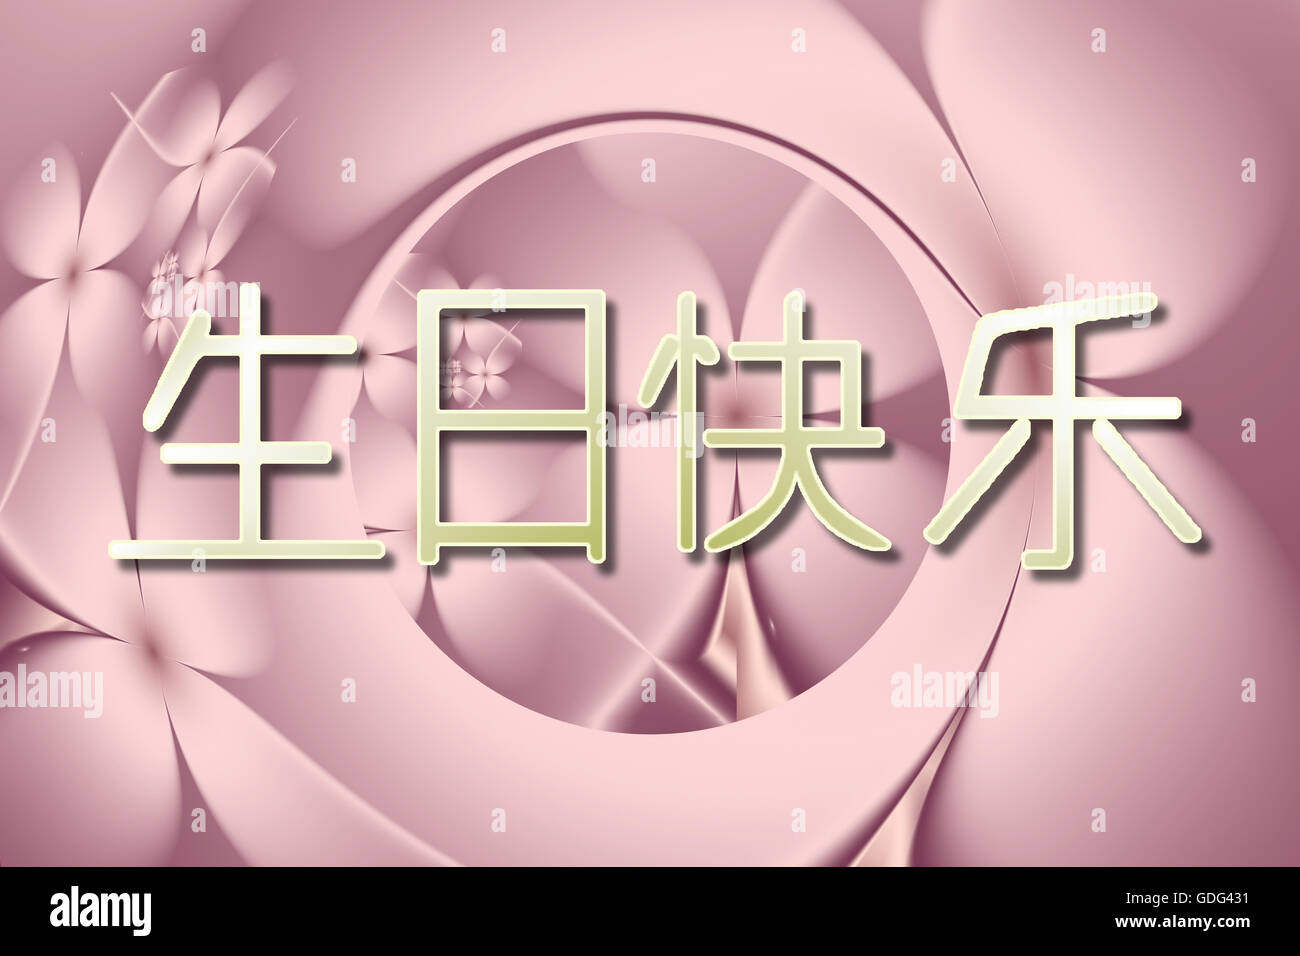 Happy birthday wishes written in chinese characters on beautiful happy birthday wishes written in chinese characters on beautiful floral design m4hsunfo